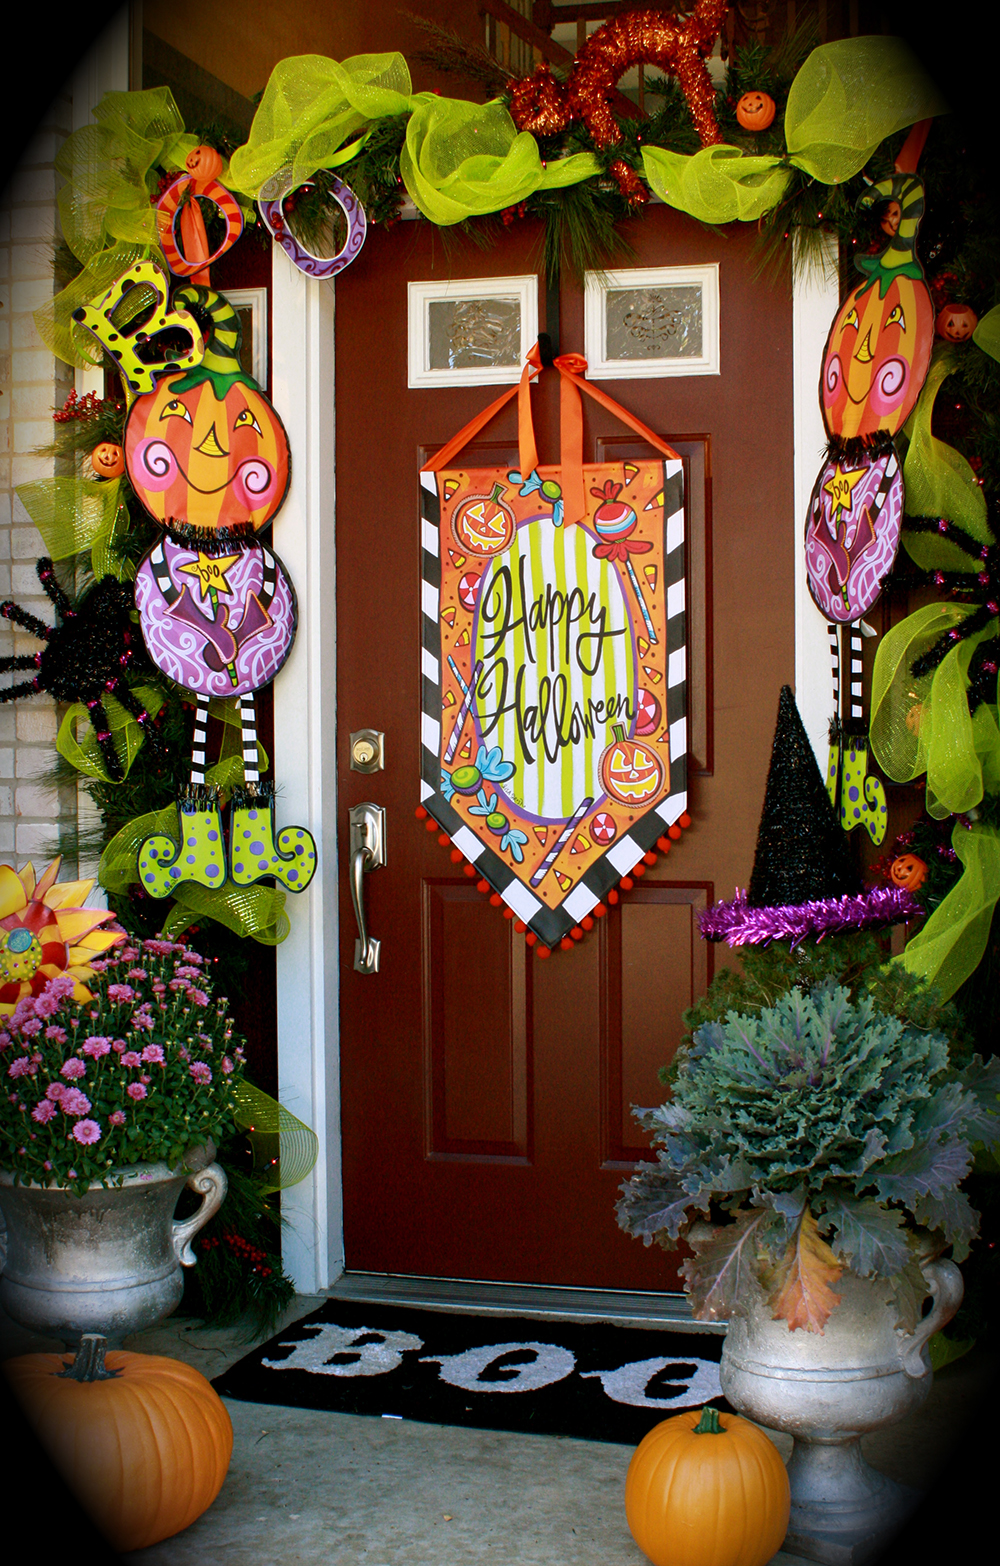 50 Best Halloween Door Decorations For 2018